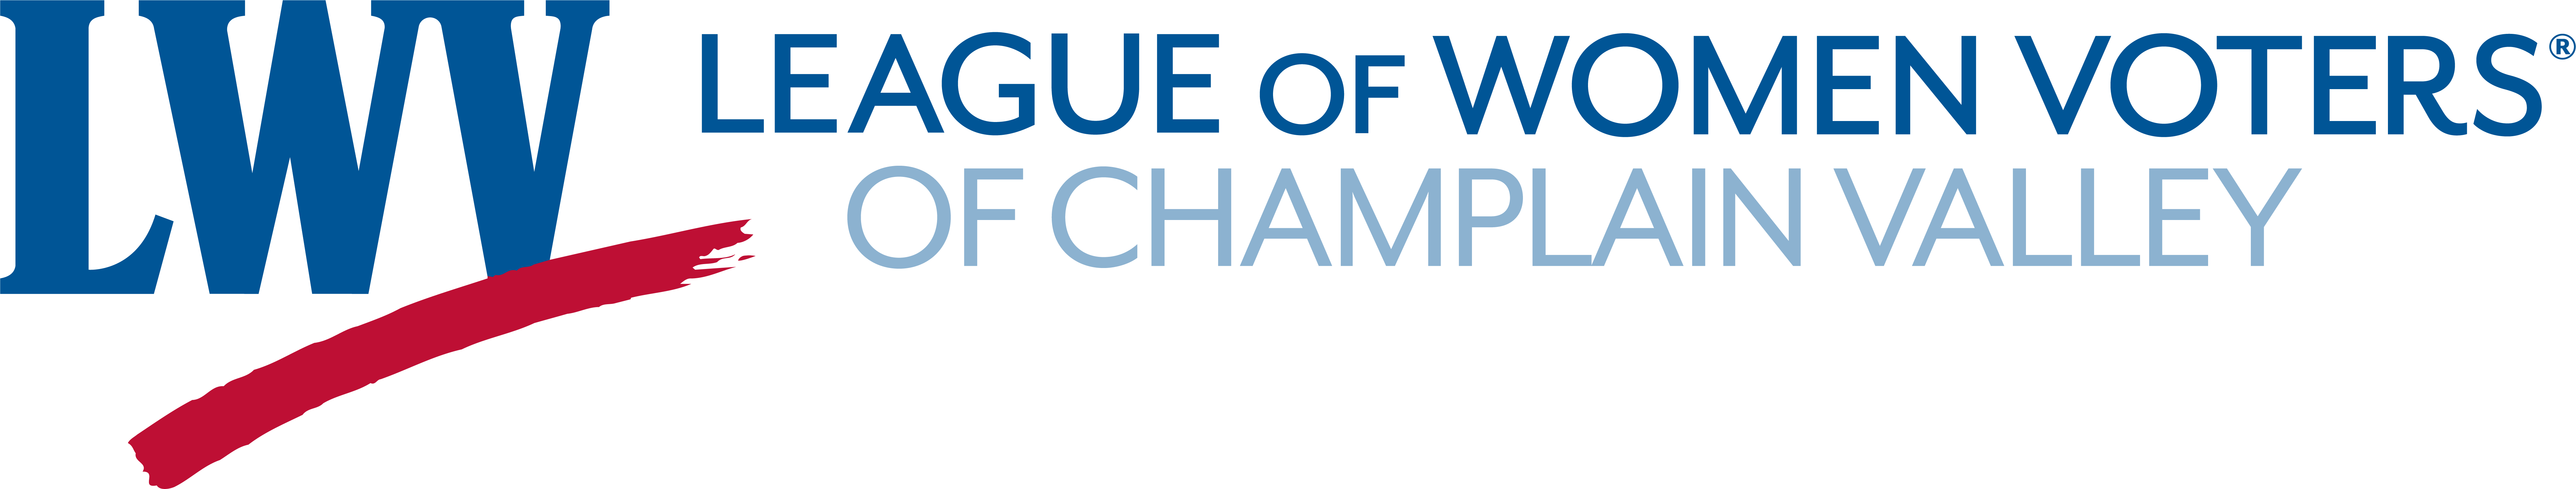 Champlain Valley League of Women Voters Logo